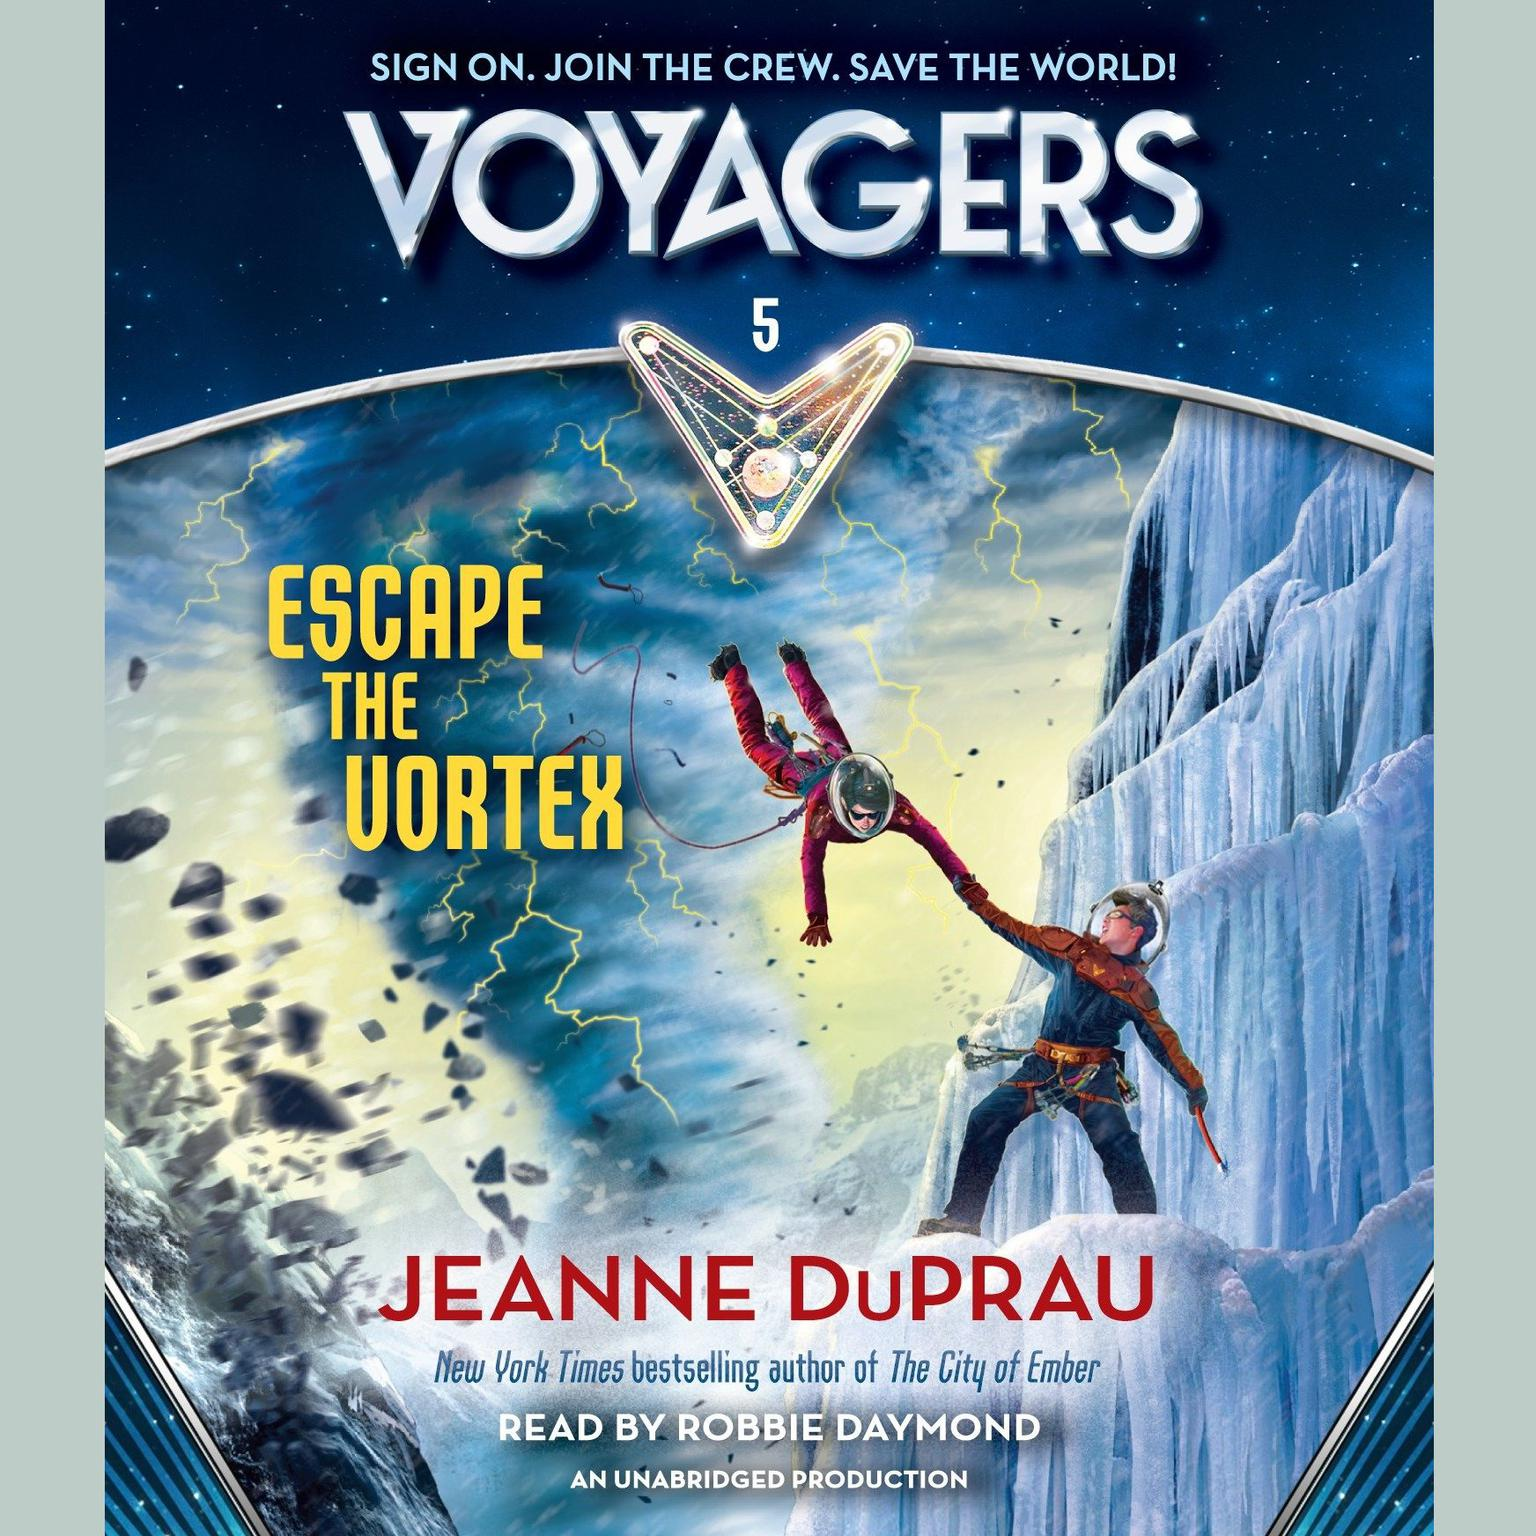 Printable Voyagers: Escape the Vortex (Book 5) Audiobook Cover Art